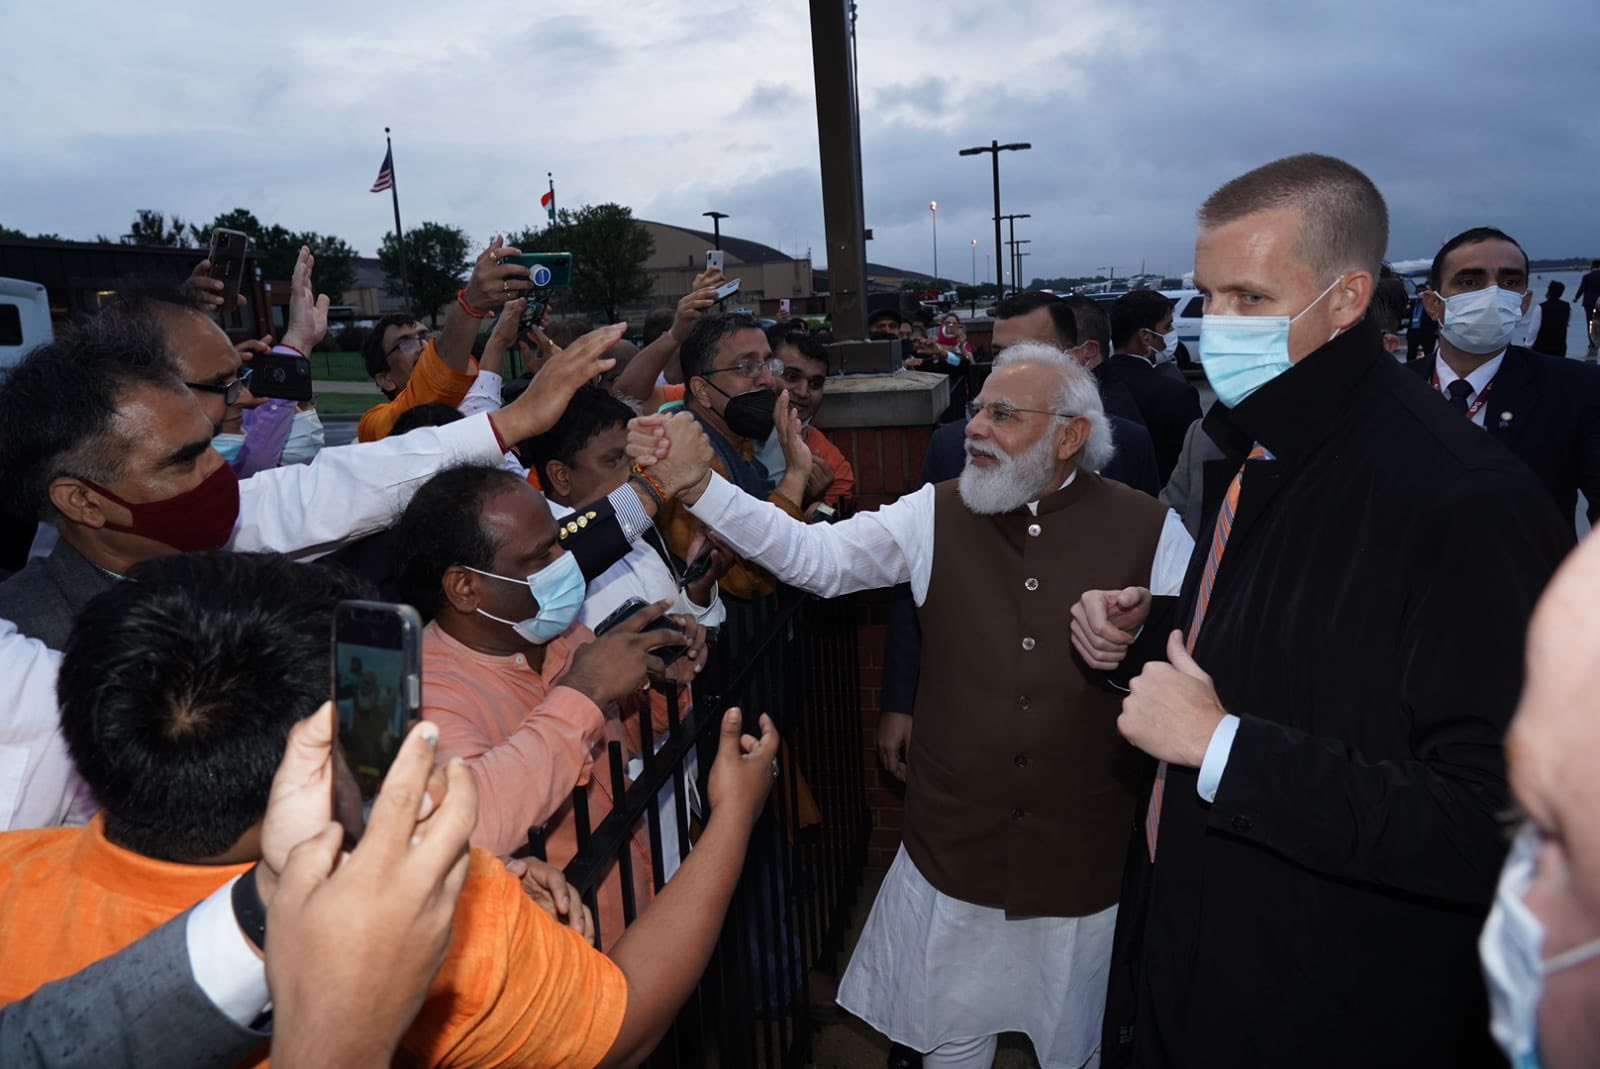 Modi was also warmly greeted by groups of Indian-Americans at the airport soon after his plane landed